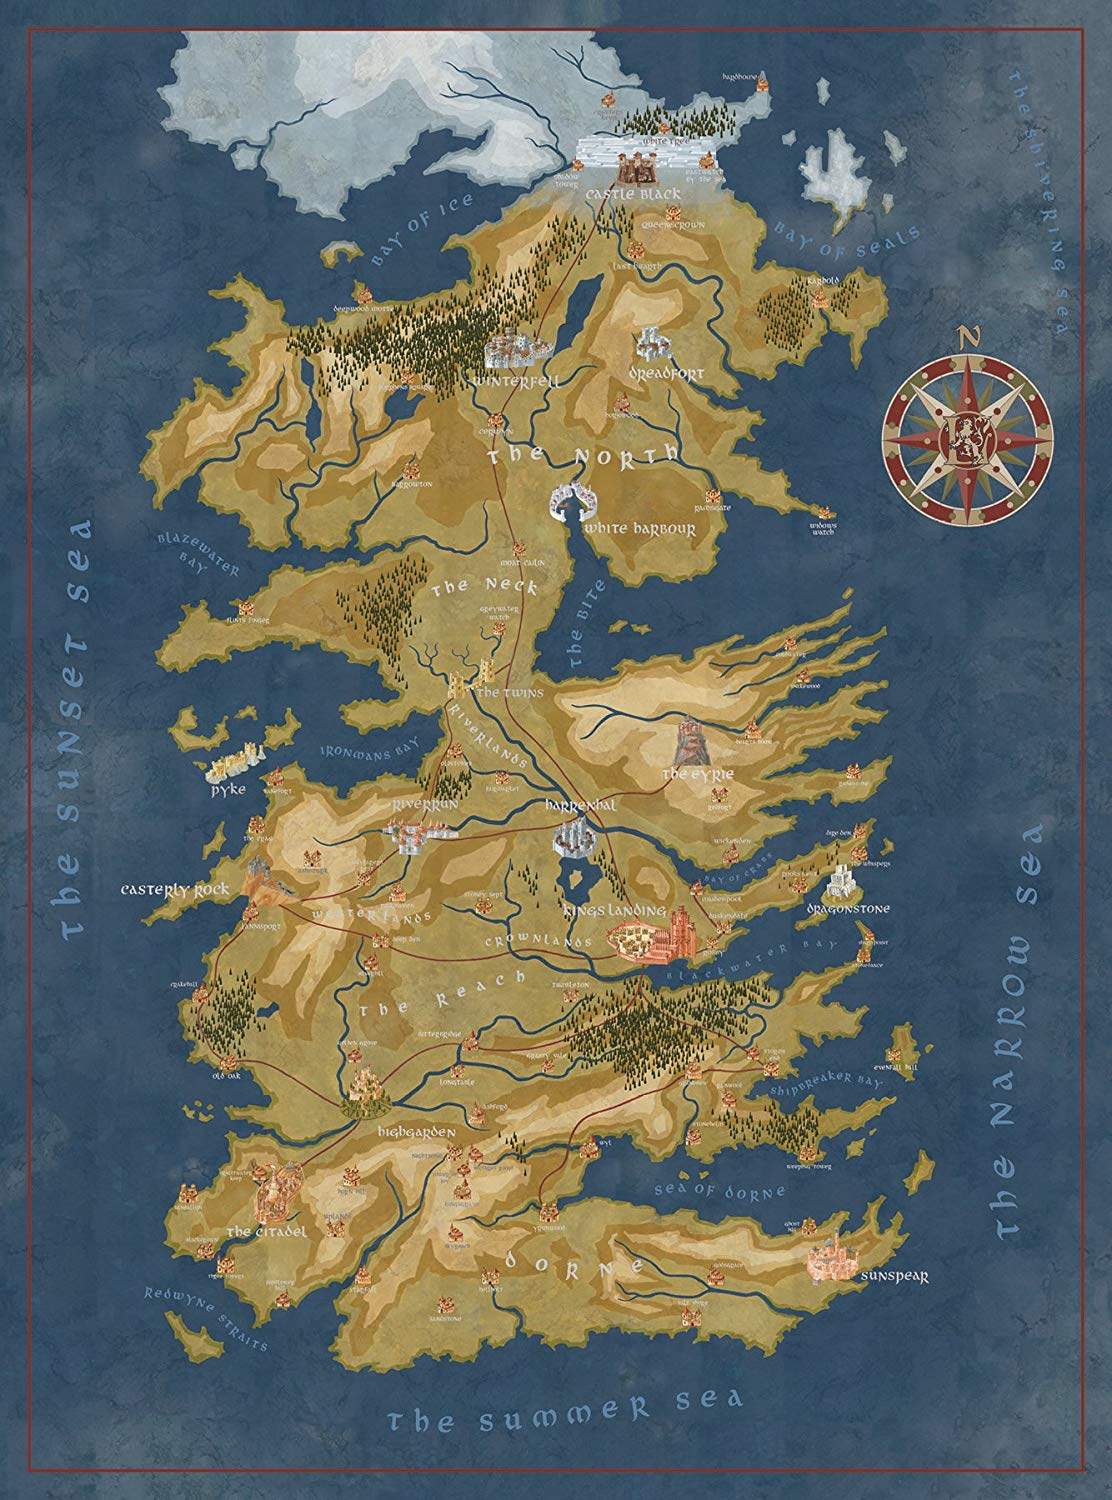 Westeros | Game of Thrones Wiki | FANDOM powered by Wikia on walking dead map, king of thrones map, world map, the game book map, harry potter book map, outlander book map, under the dome book map, king of thorns map, gameof thrones map, the mysterious island book map, wentworth prison scotland map, dothraki sea map,